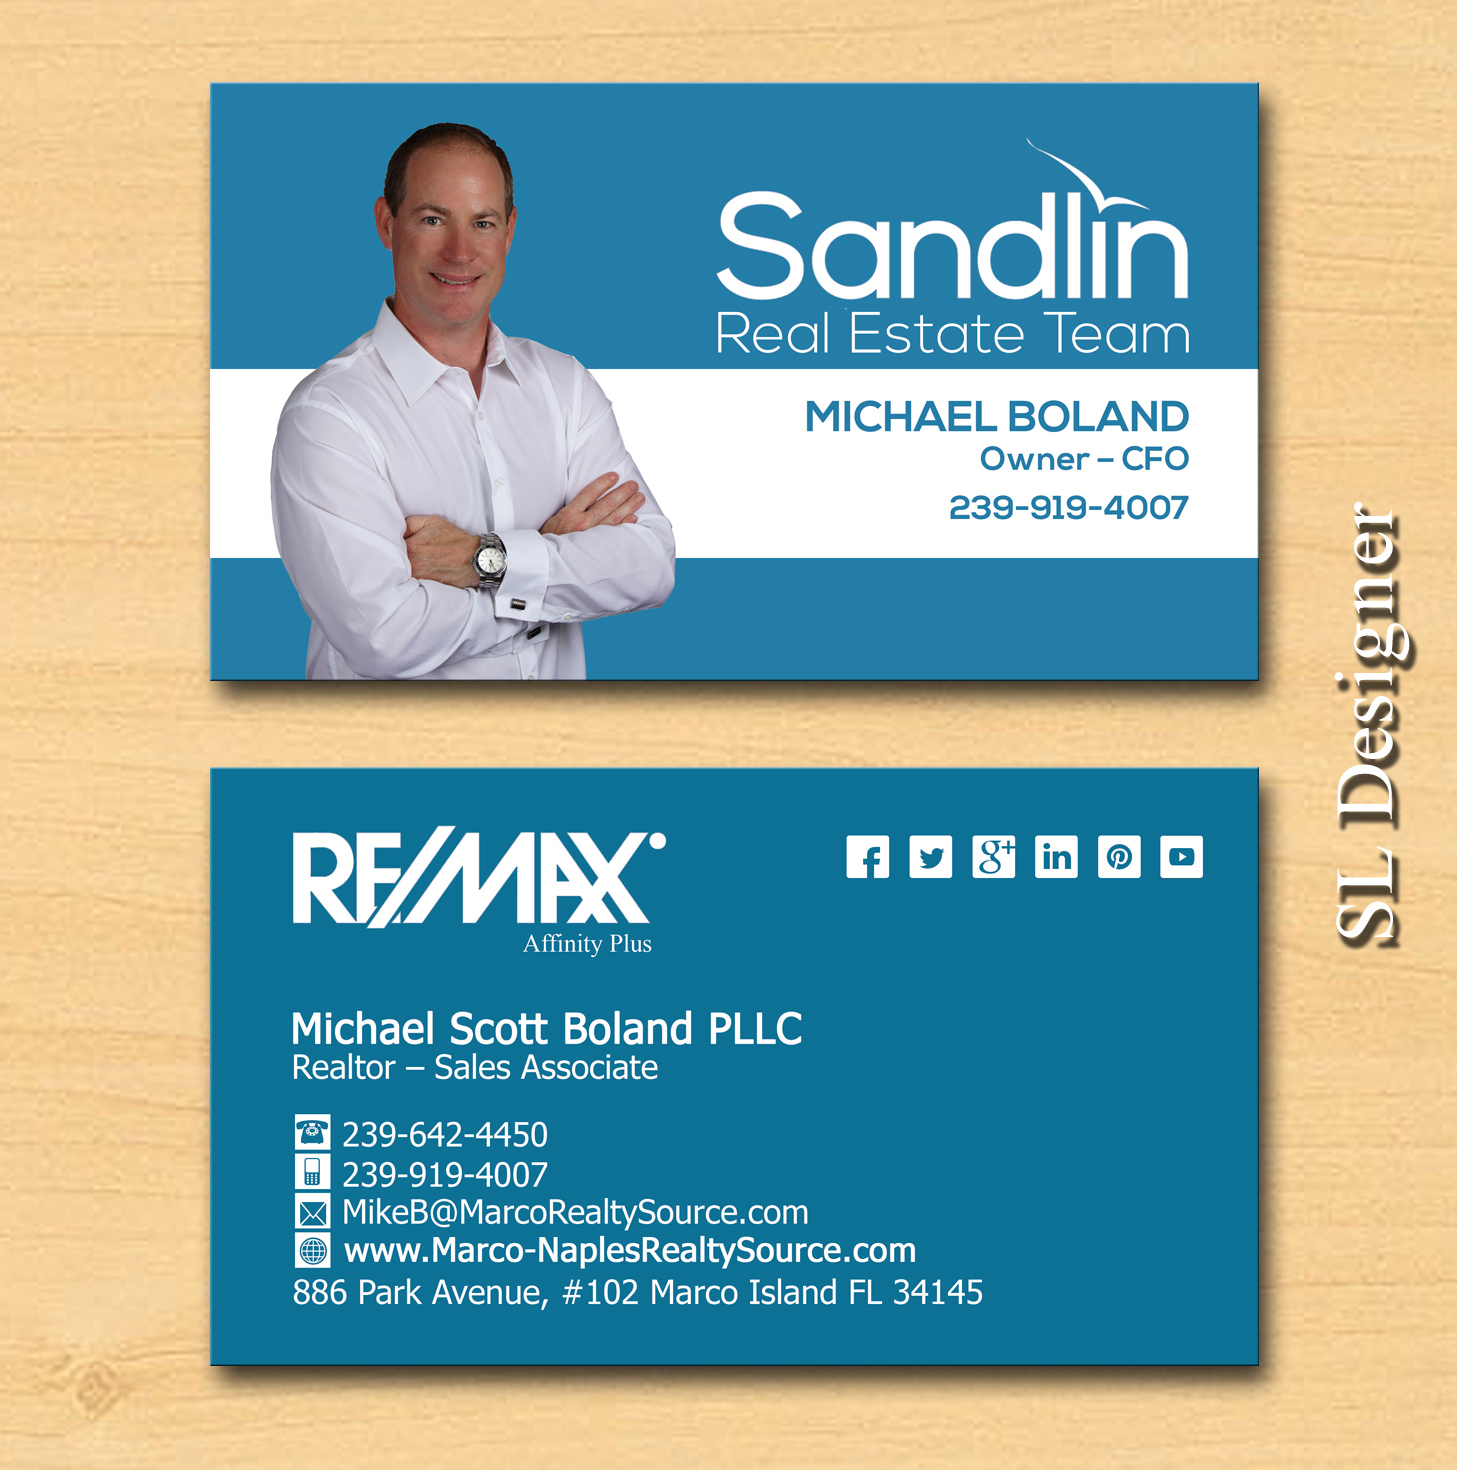 Upmarket professional real estate agent business card design for a business card design by sl designer for this project design 7586489 colourmoves